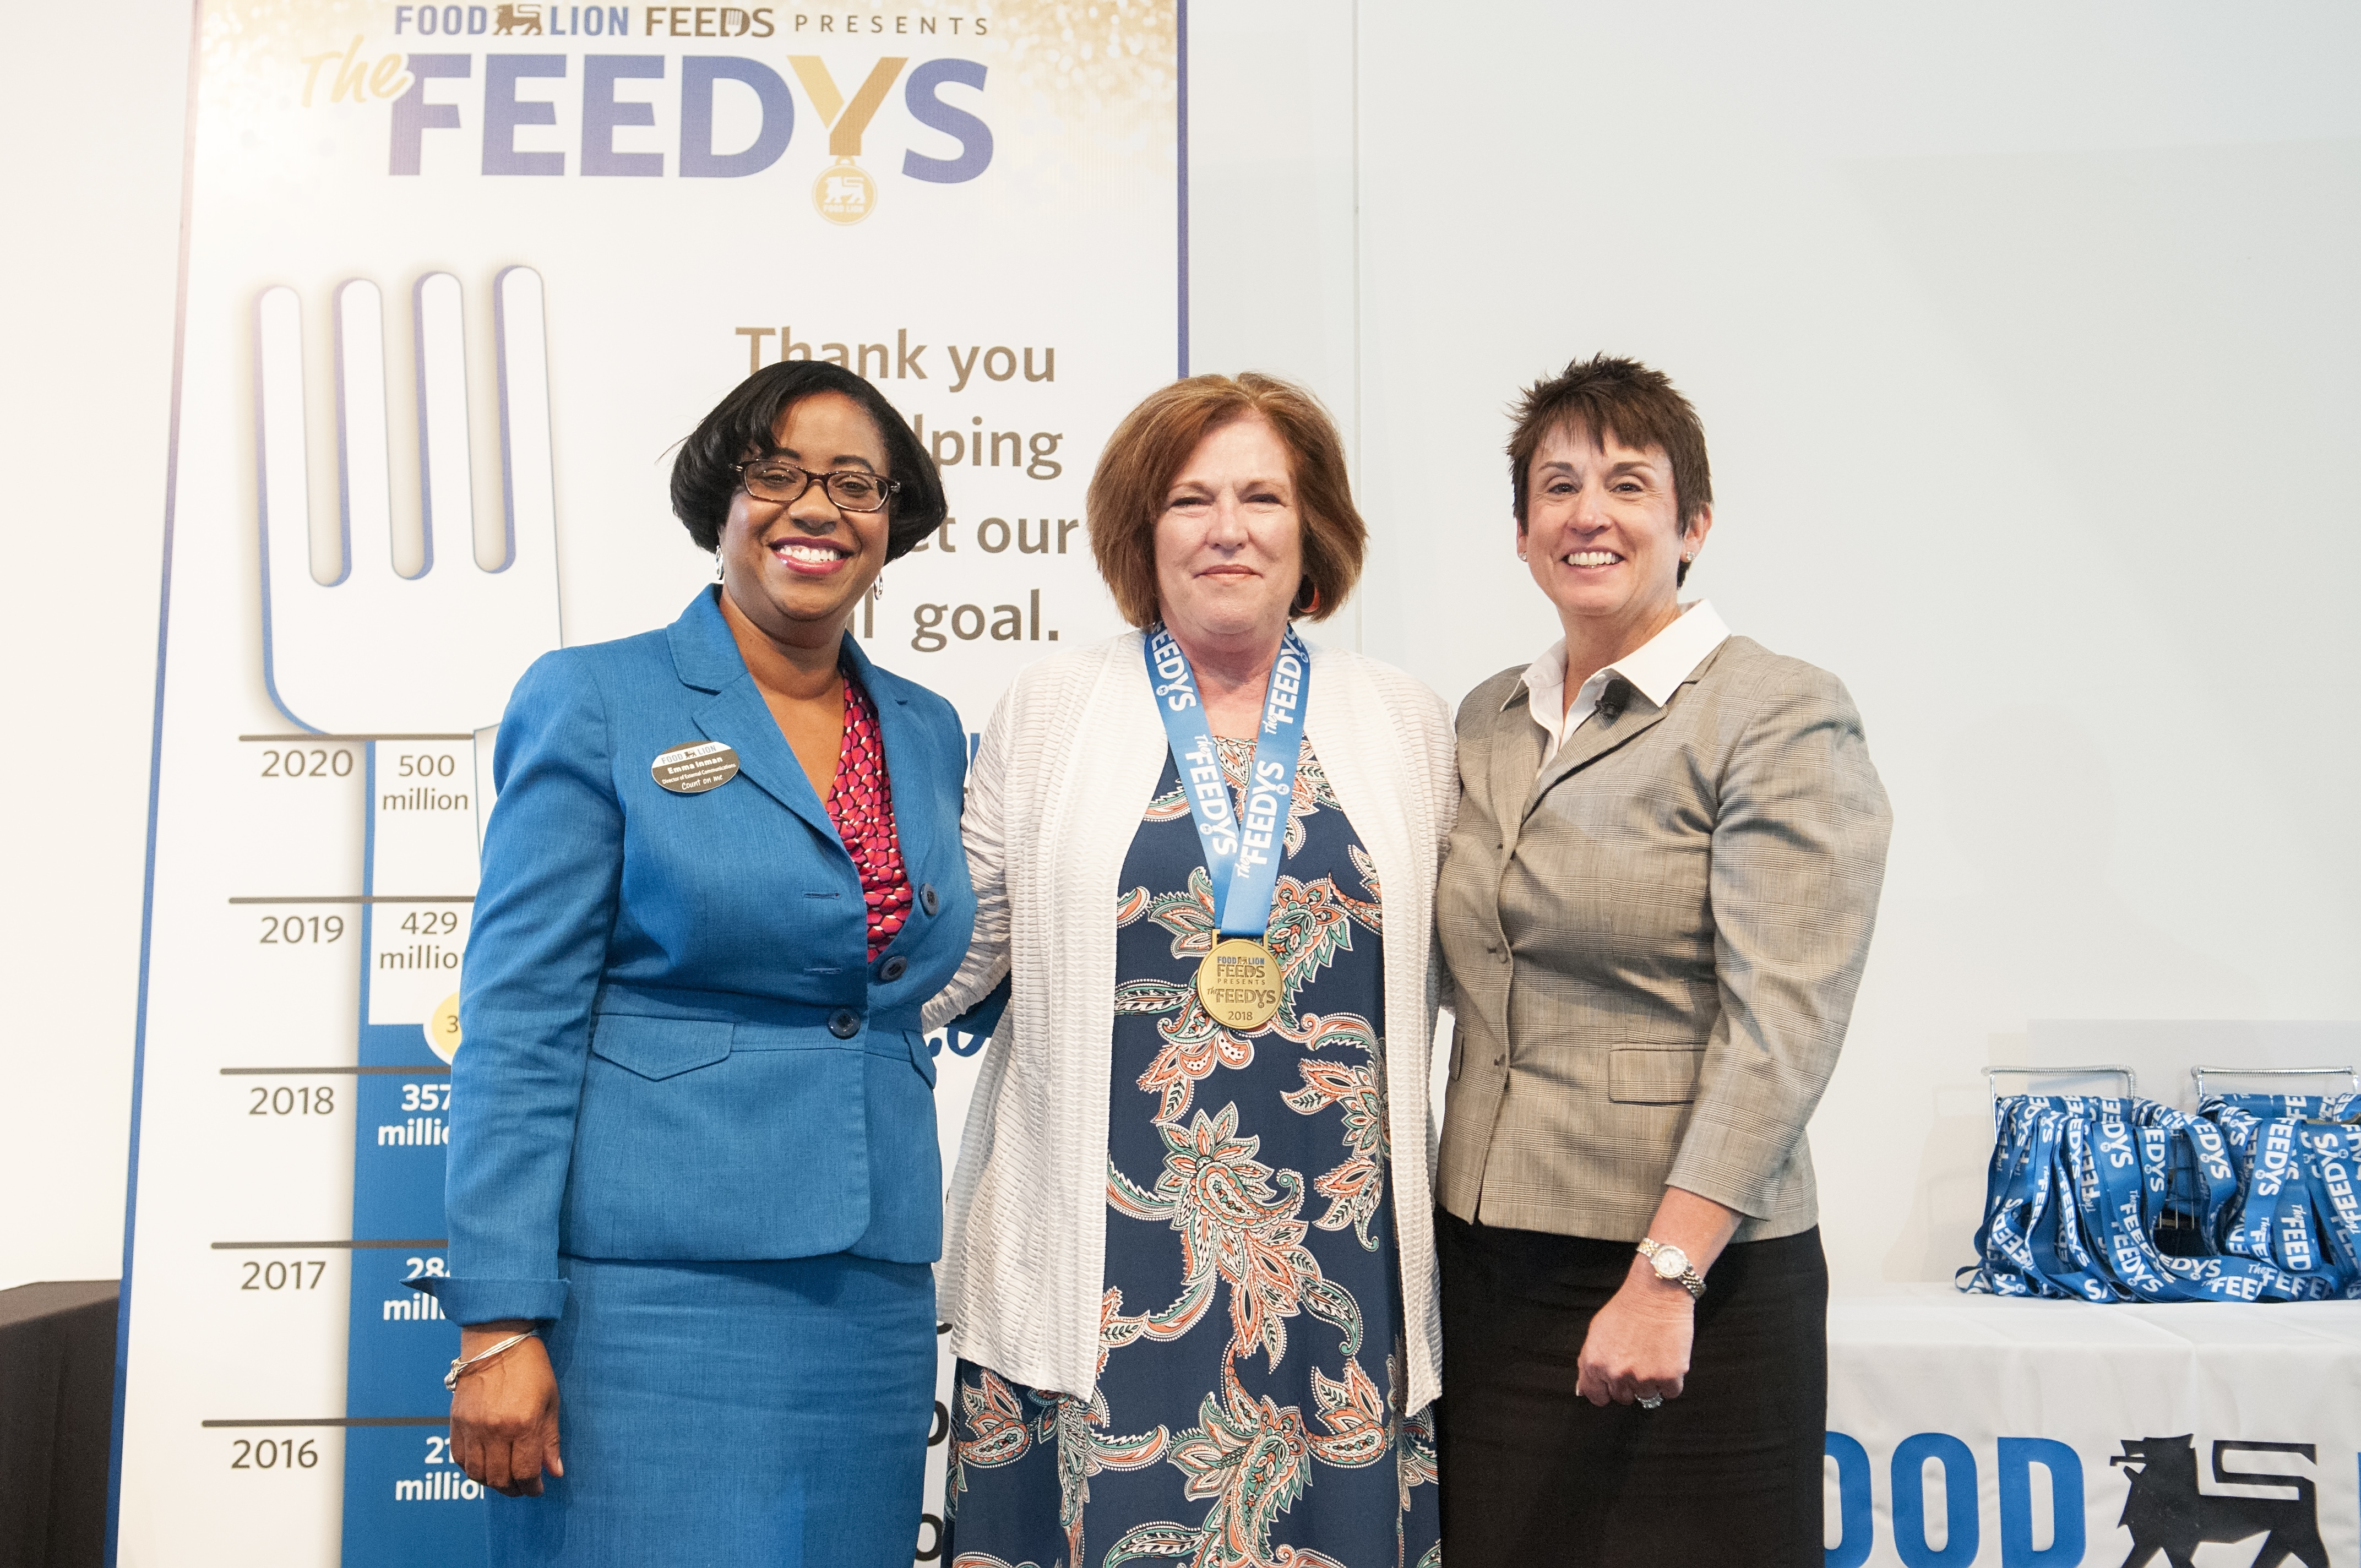 Correcting And Replacing Food Lion Hosts Third Annual The Feedys